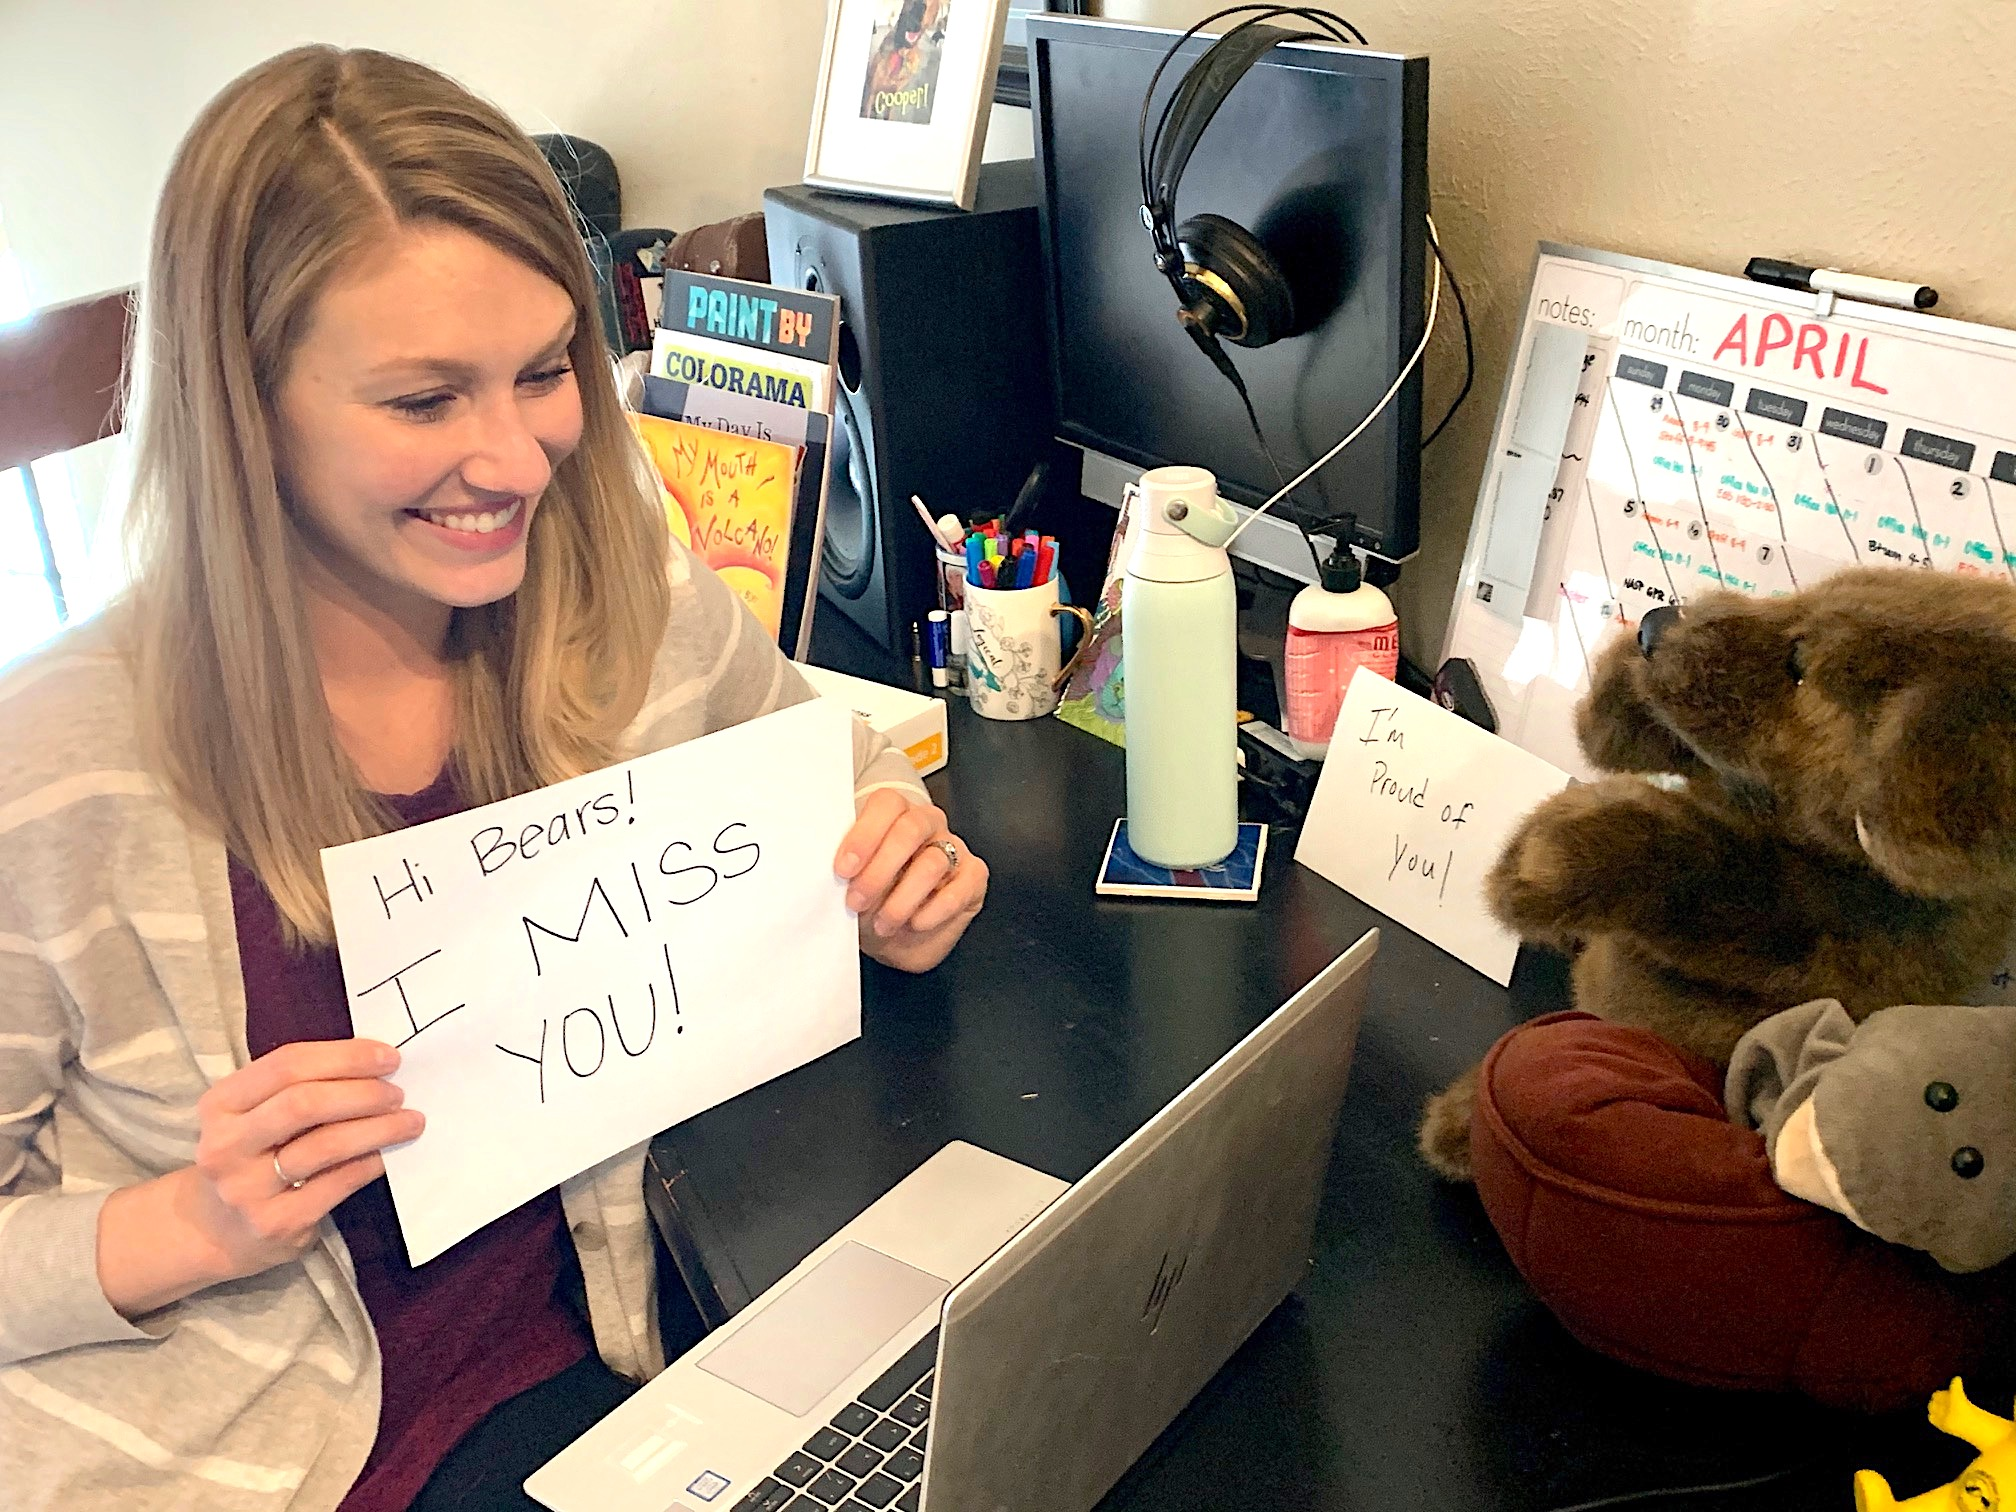 Brittany Greiert, a school psychologist at Boston P-8 School in Aurora, references the school's mascot in greeting students during remote learning.